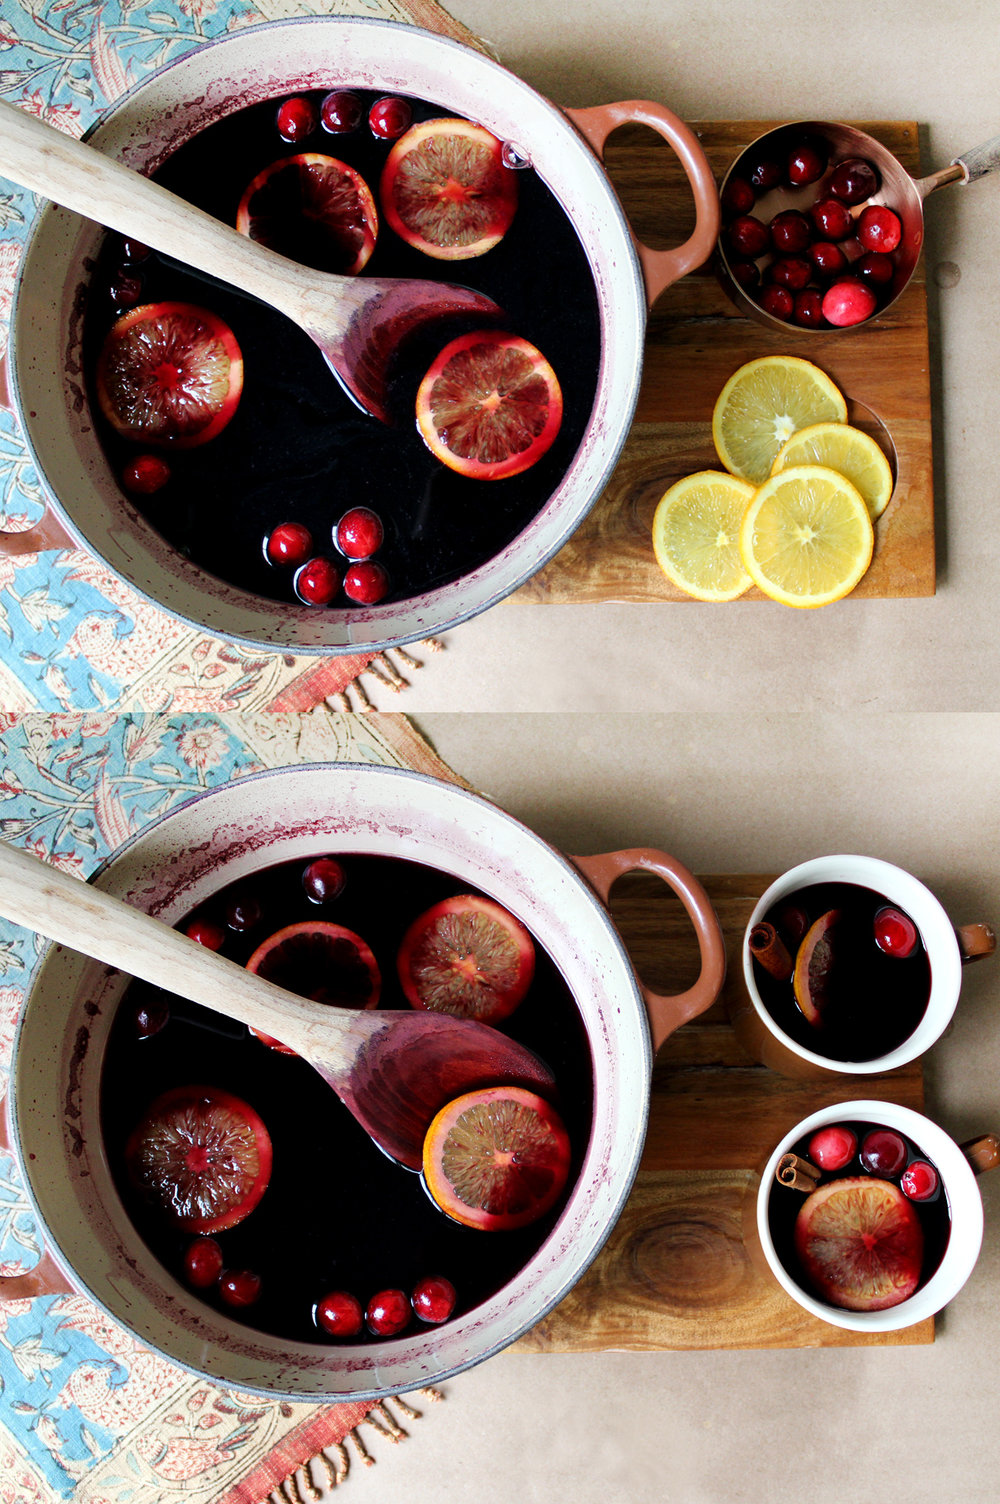 learn how to make gluehwein! a warm, spiced wine